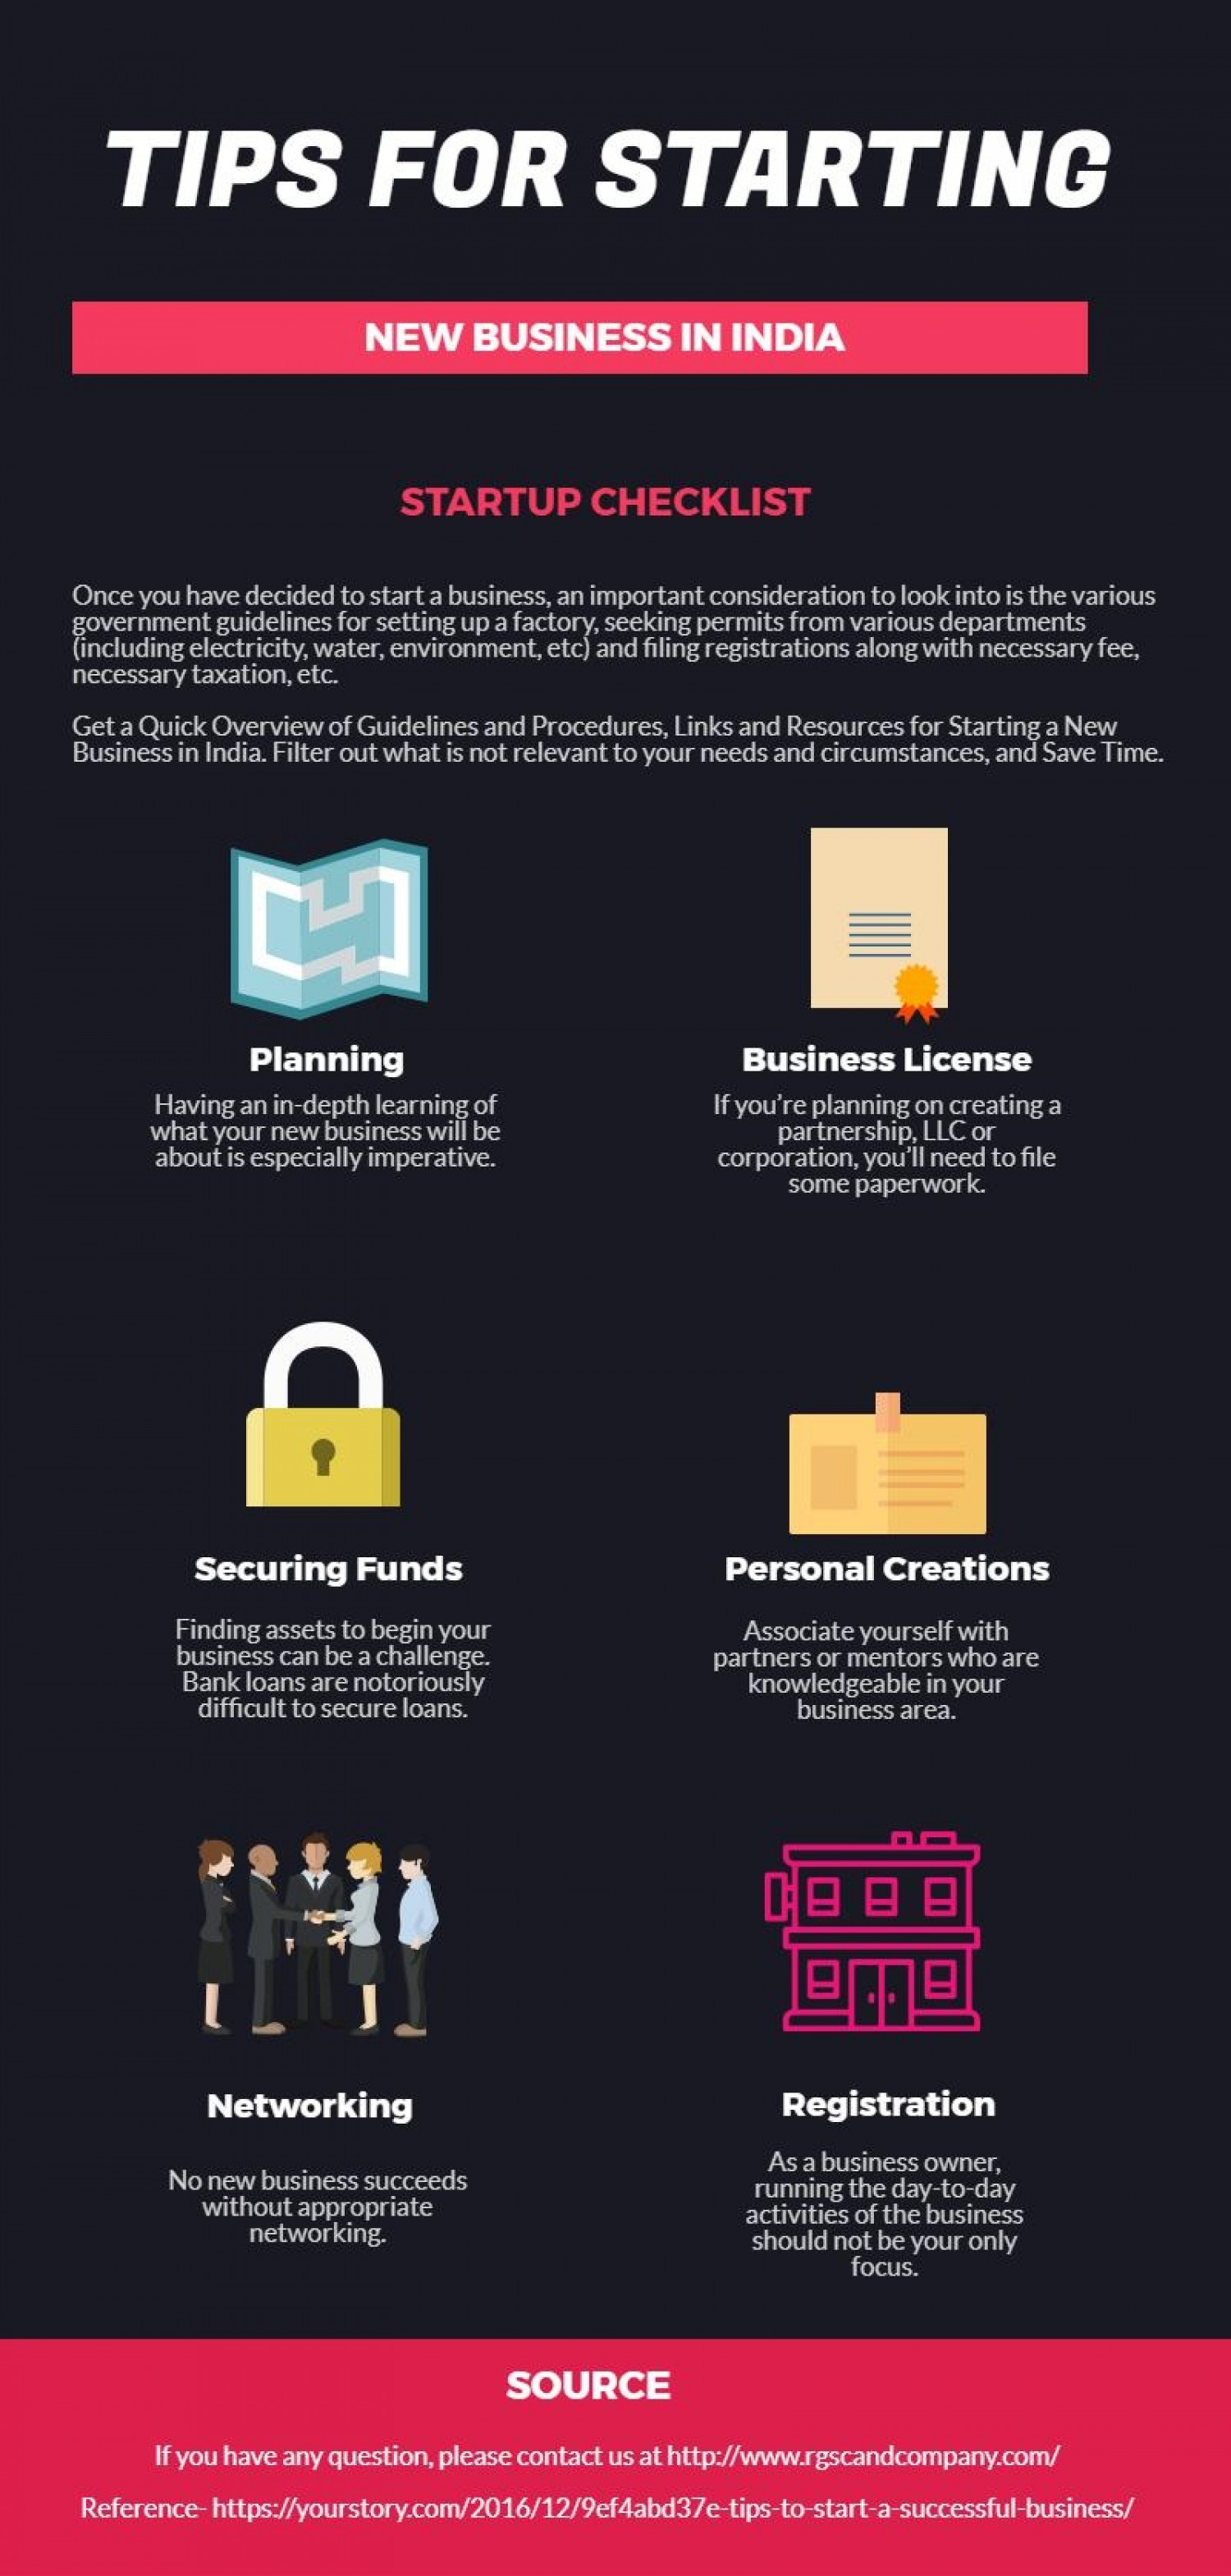 Tips for Starting New Business in India- RGSC and Company Infographic